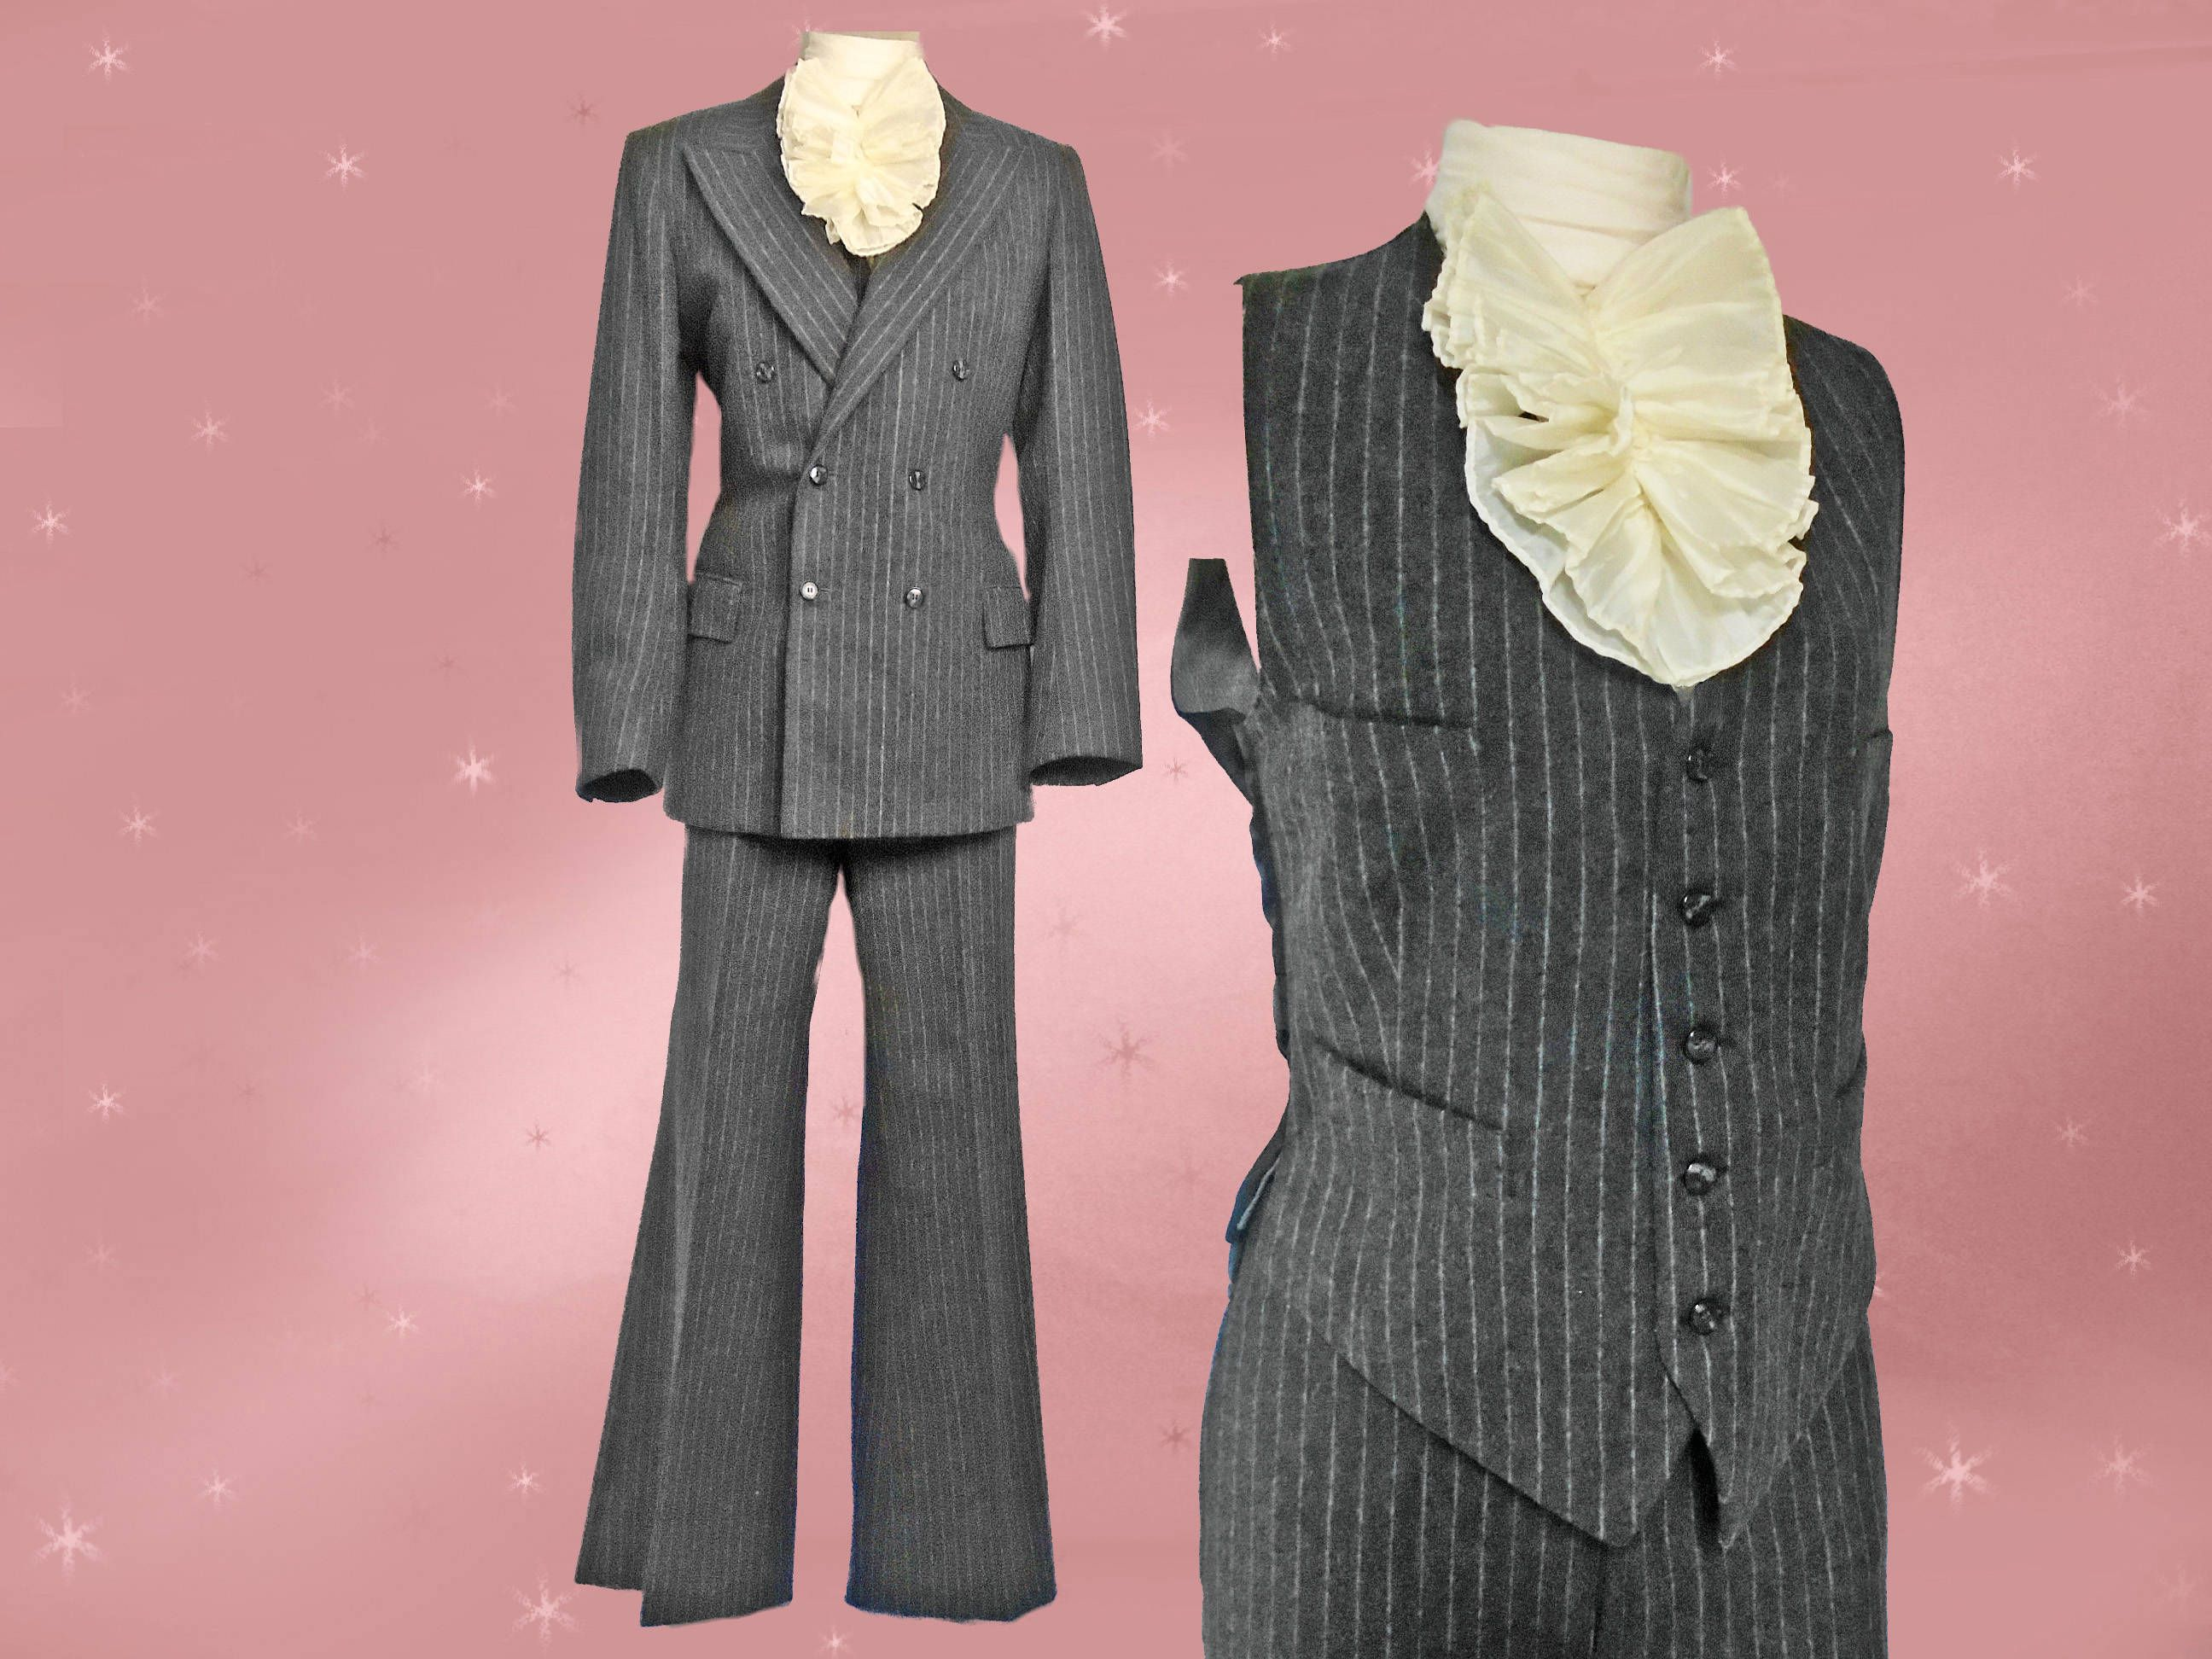 6b17eed131368c 1960s Mod Dandy Suit Mens Vintage 3 Piece Grey Flannel Pinstripe Suit,  Tapered Waist Long Jacket, Vest, Bell Bottom Trousers, Carnaby Street by ...